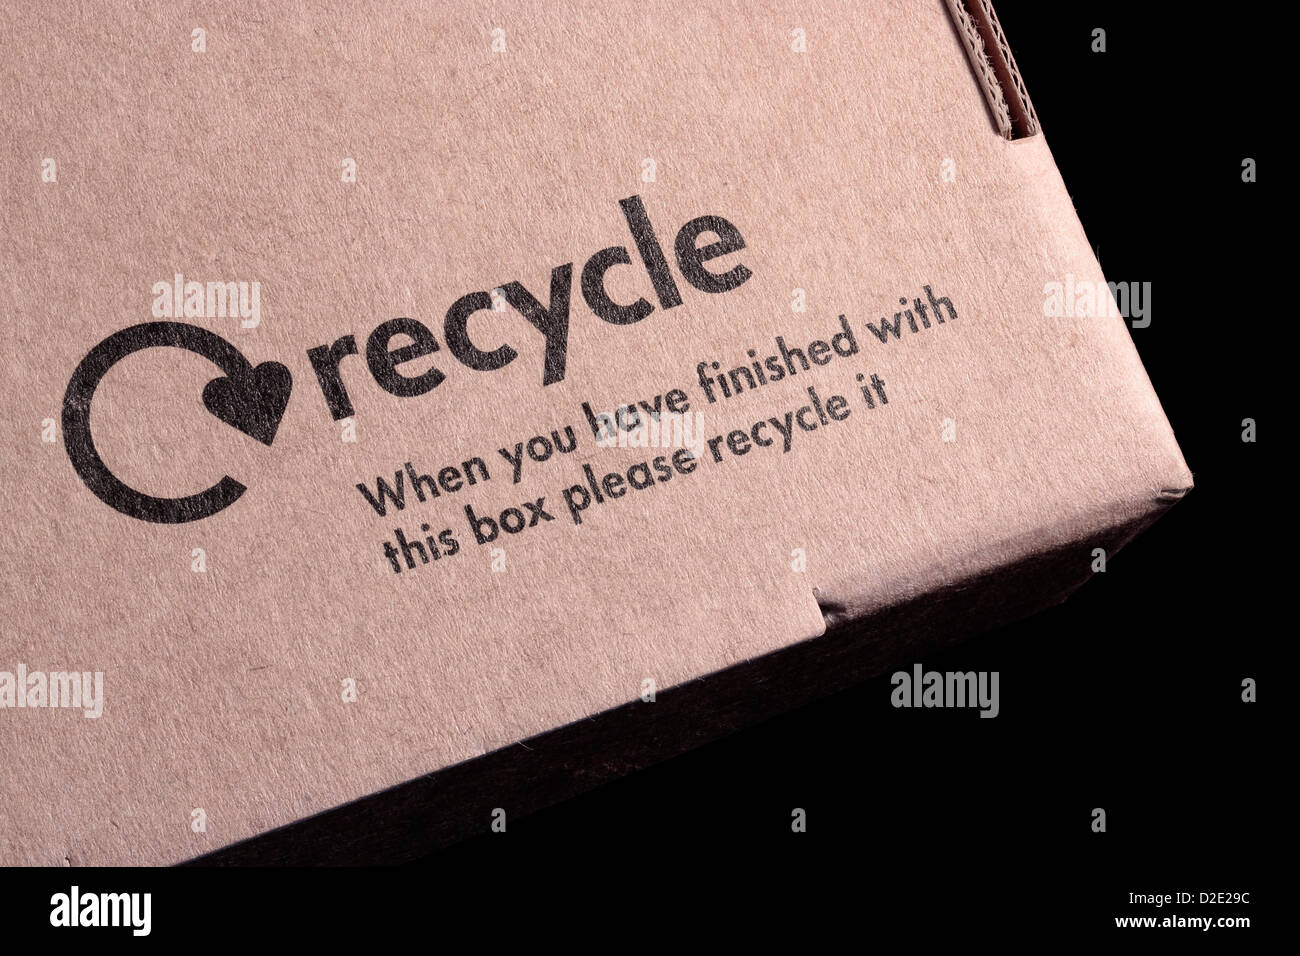 Cardboard box recycling symbol and message when you have finished cardboard box recycling symbol and message when you have finished with this box please recycle it colourmoves